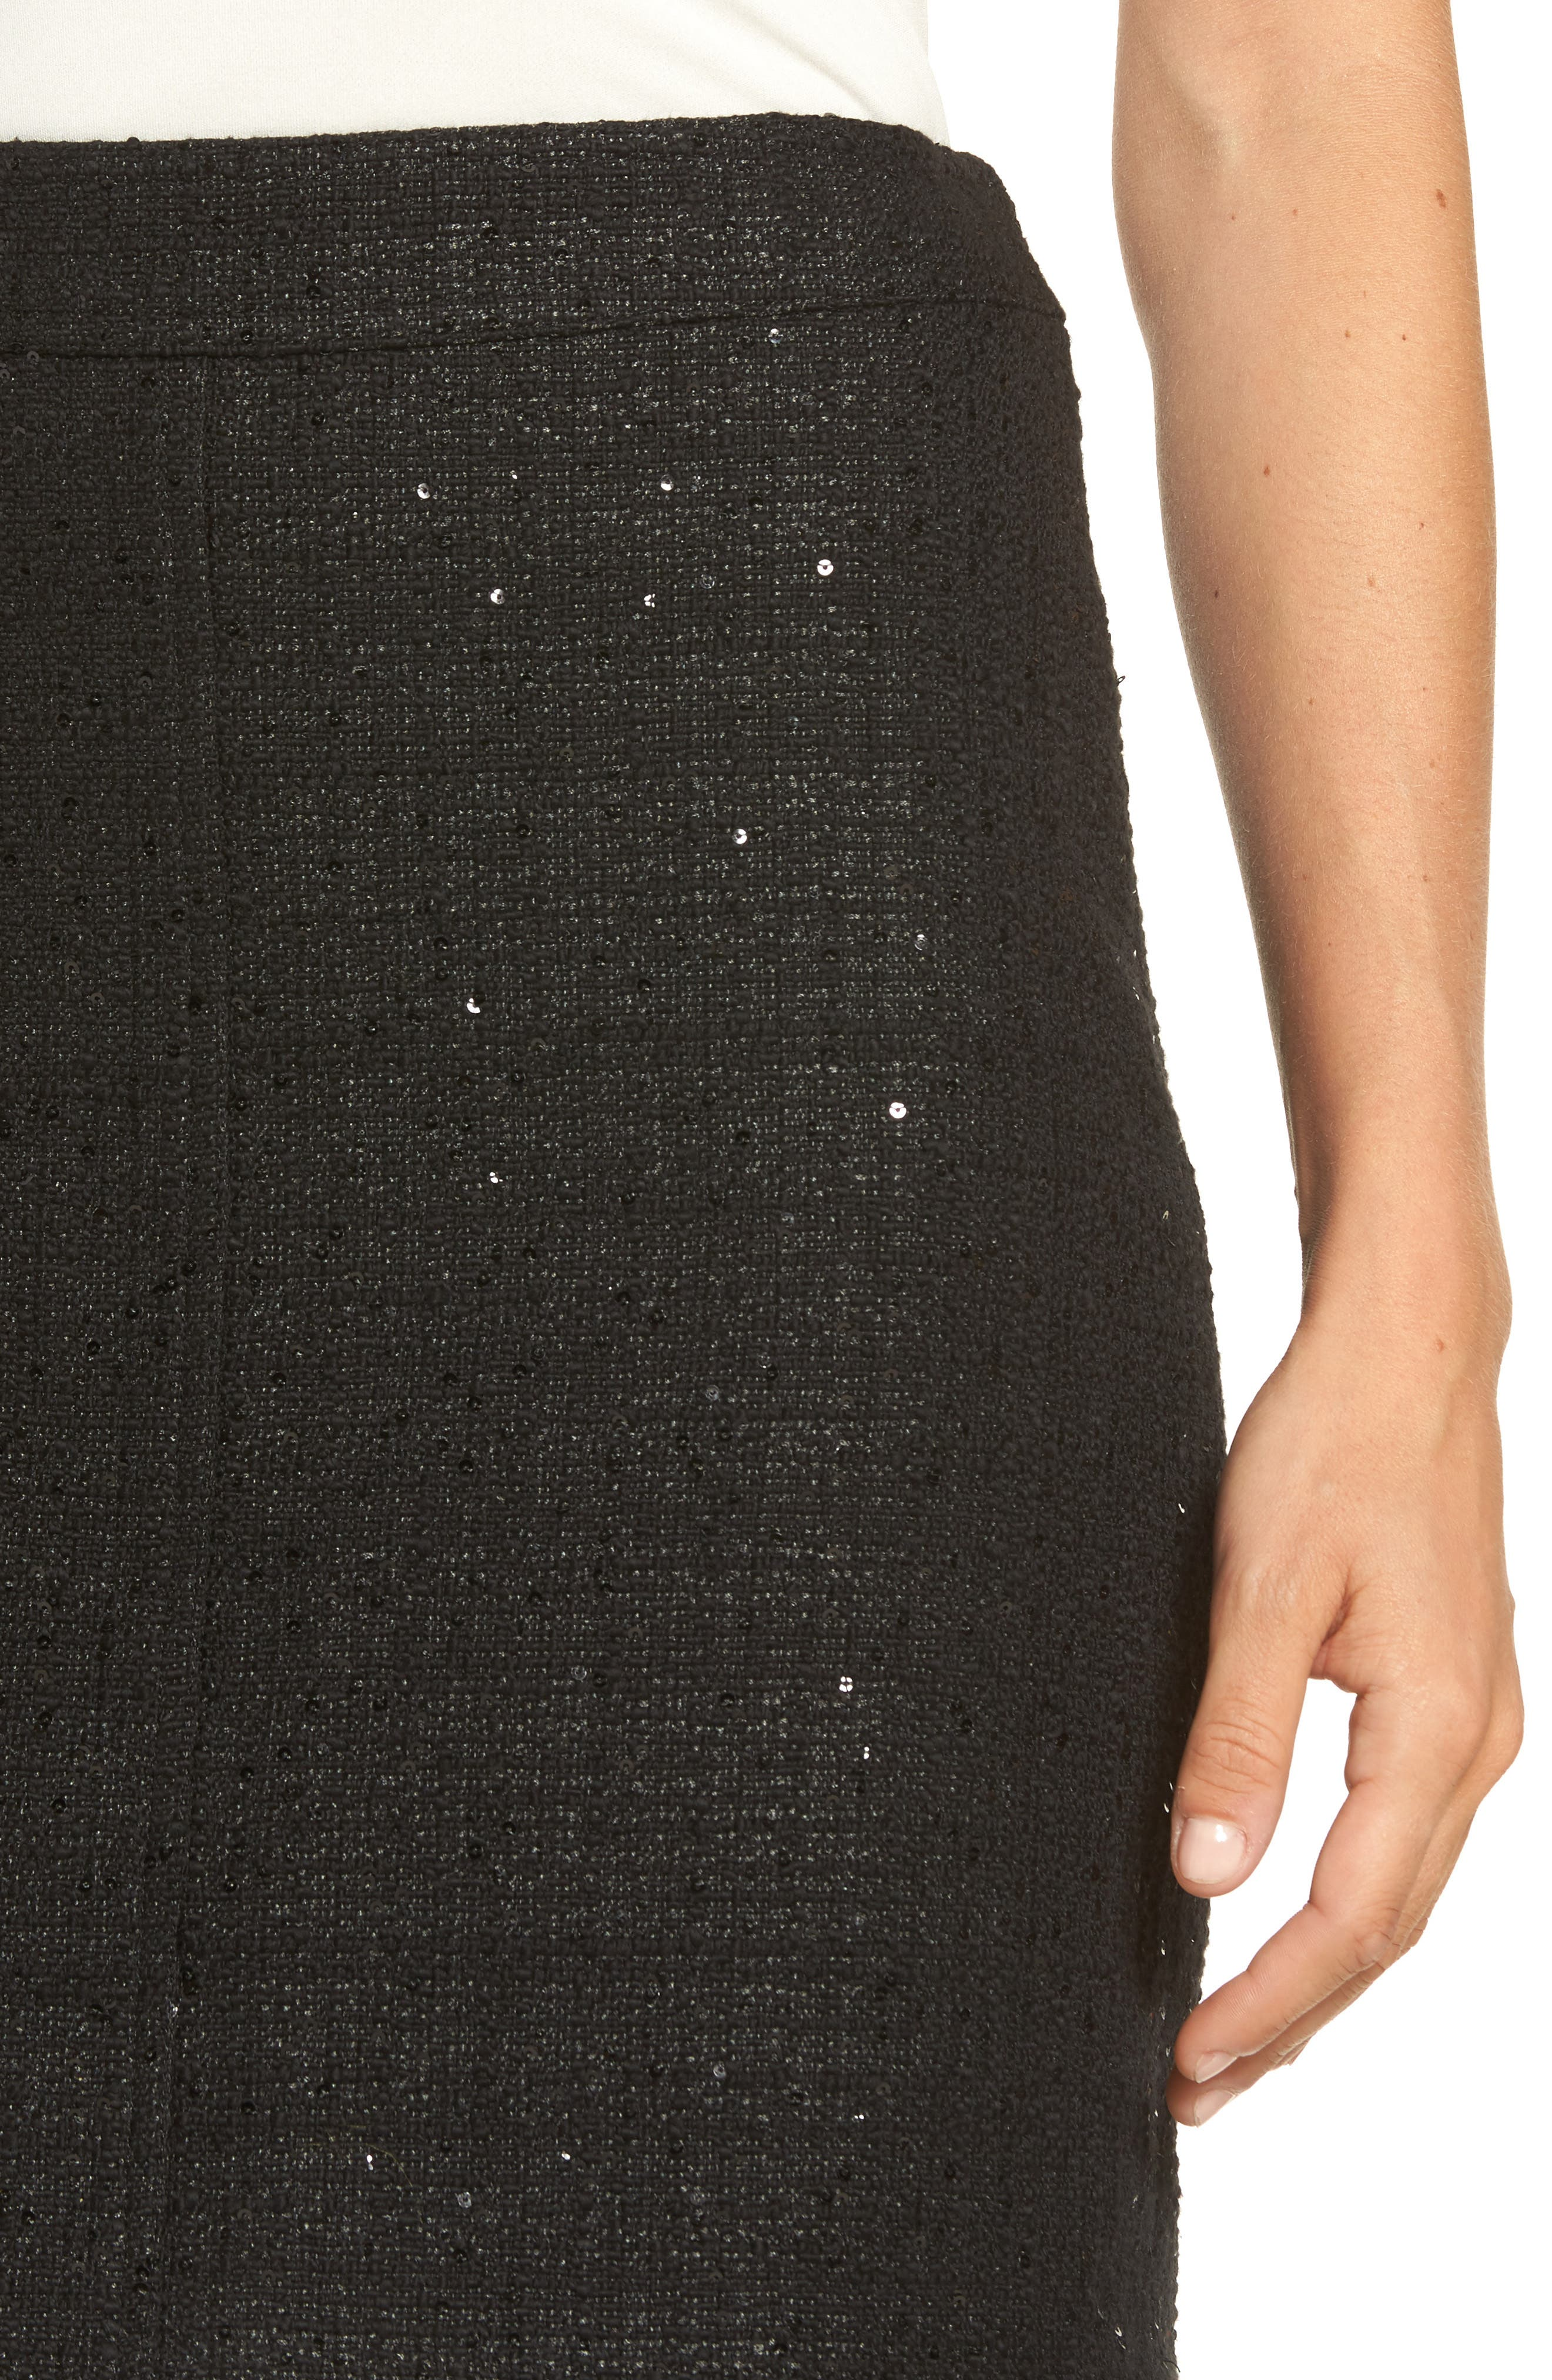 Sequin Tweed Skirt,                             Alternate thumbnail 4, color,                             Black/ Black